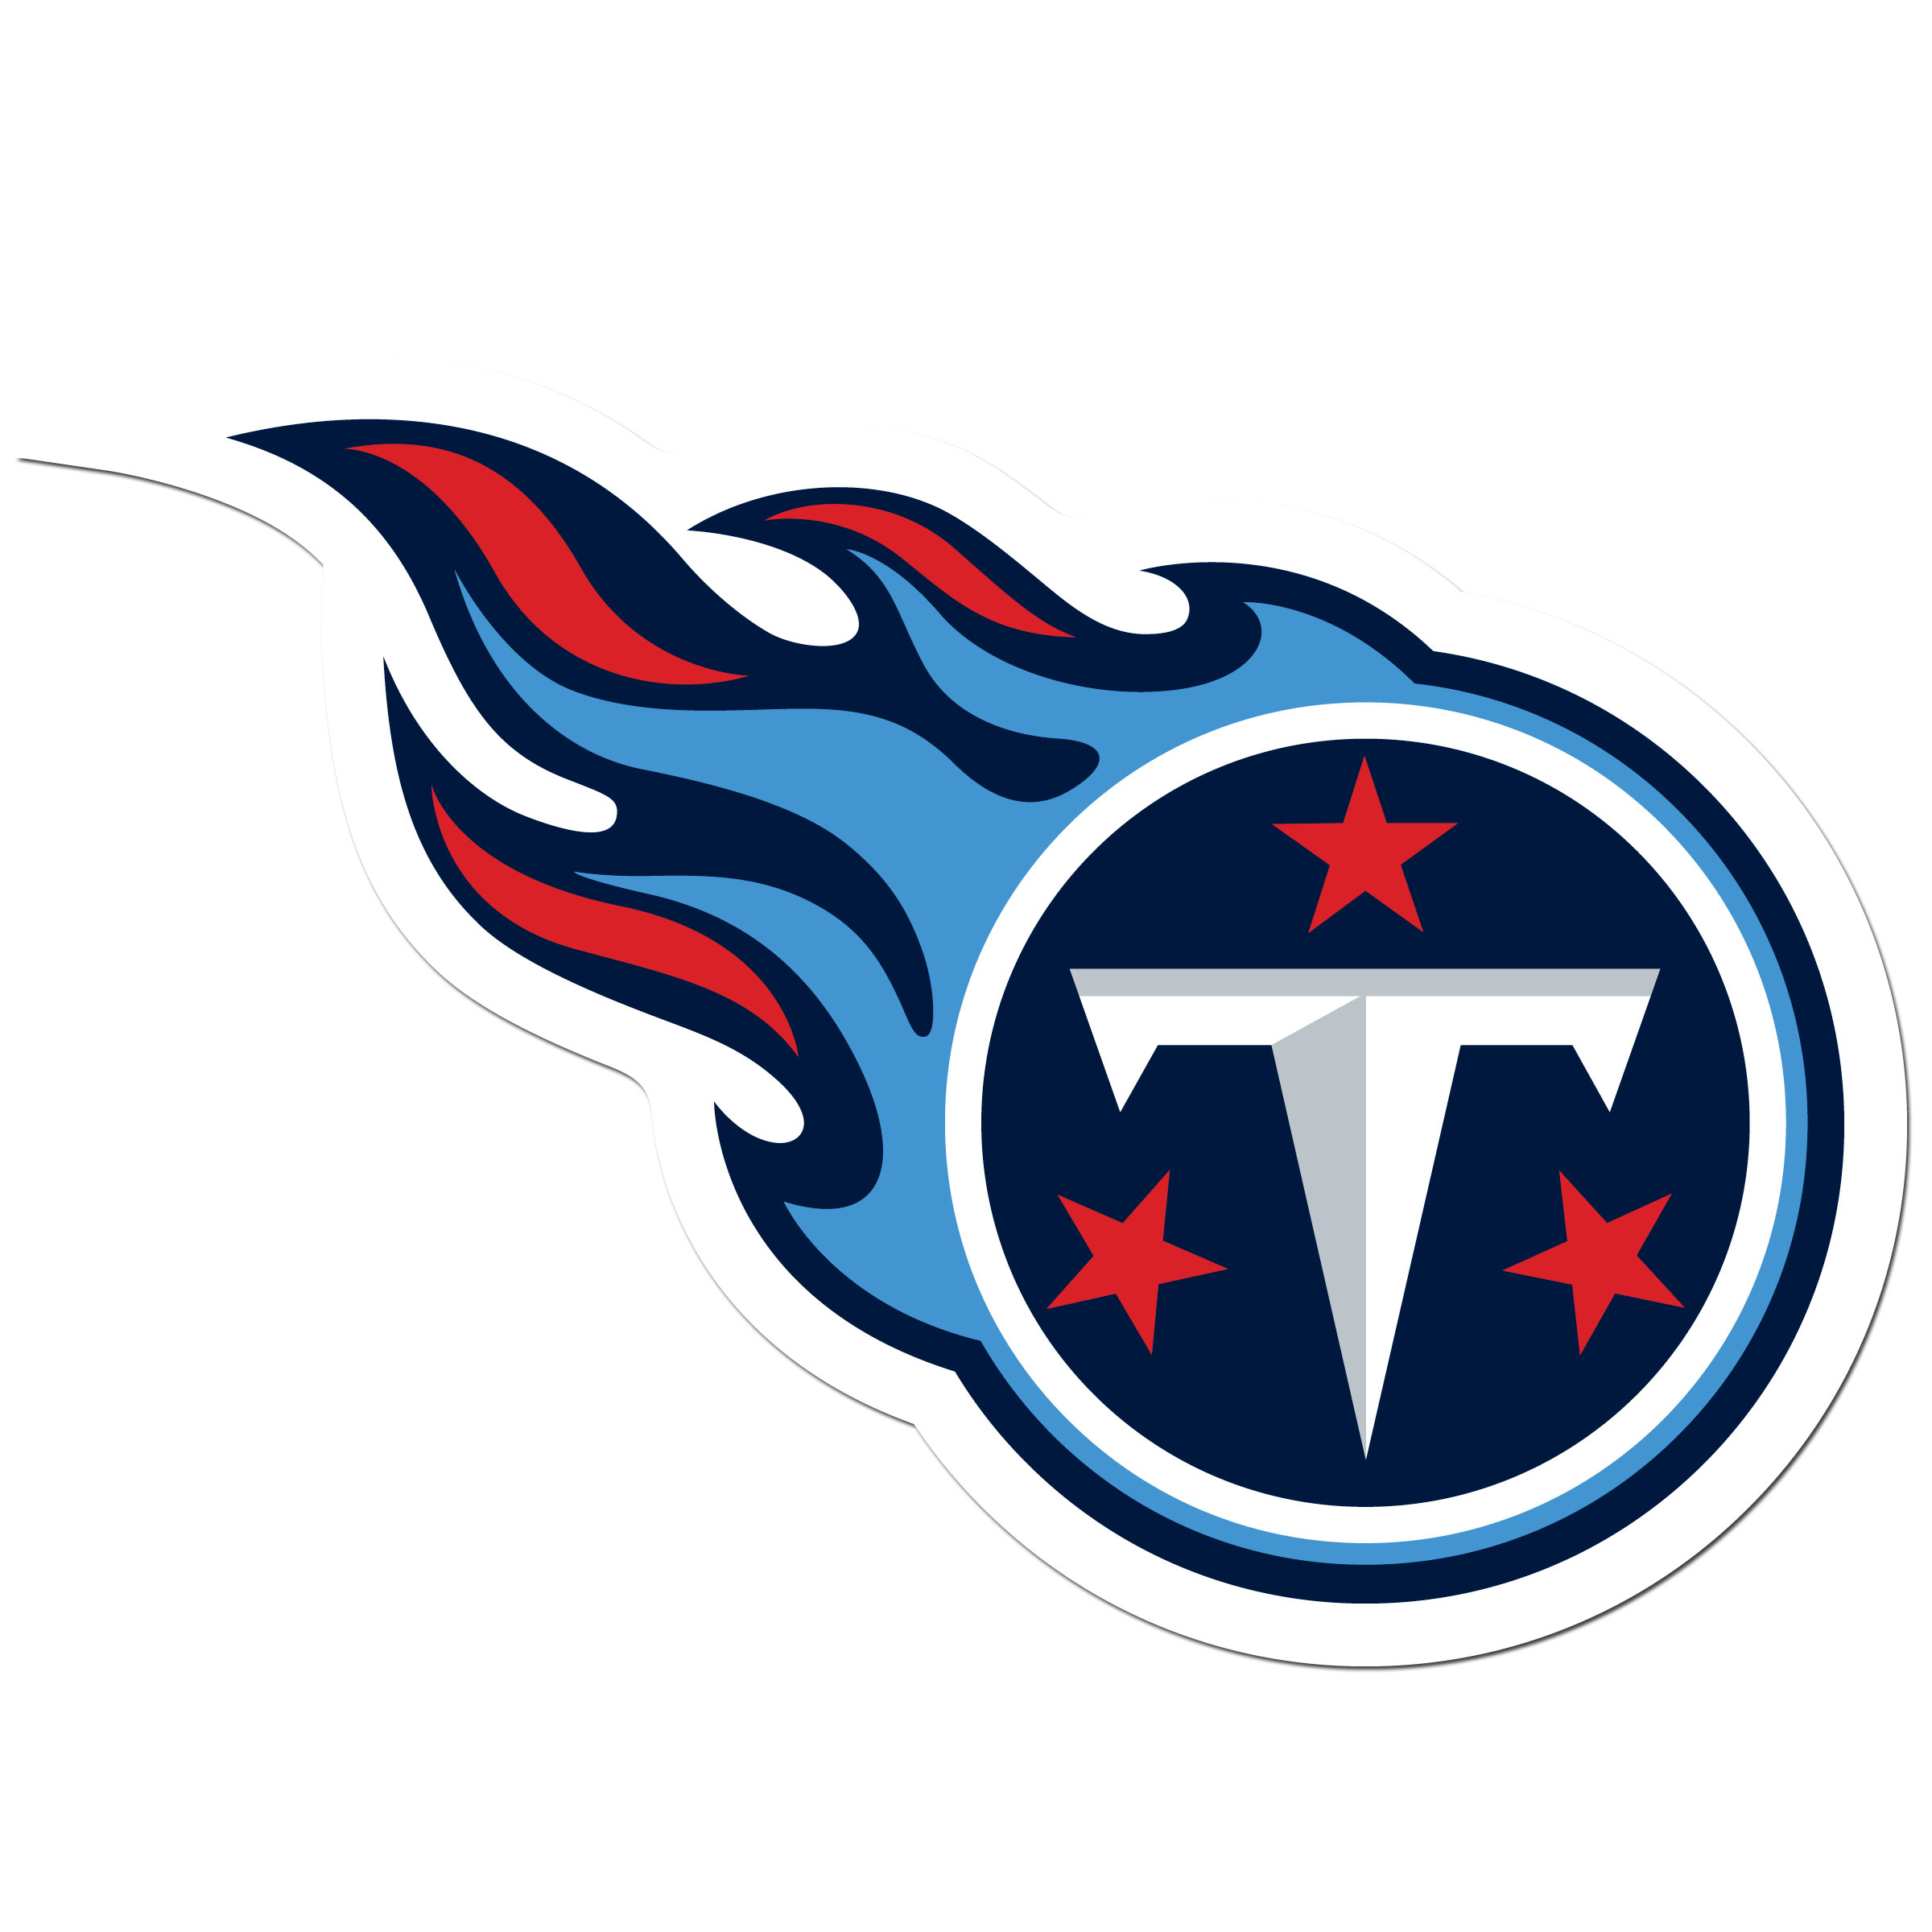 Tennessee Titans 8 inch Auto Decal - This bold, 8 inch Tennessee Titans is a great way to show off your team pride! The low tack vinyl decal is easily positioned and adjusted to make sure you get that logo in just the right spot on your vehicle. Designed to be used on the outside of the window.